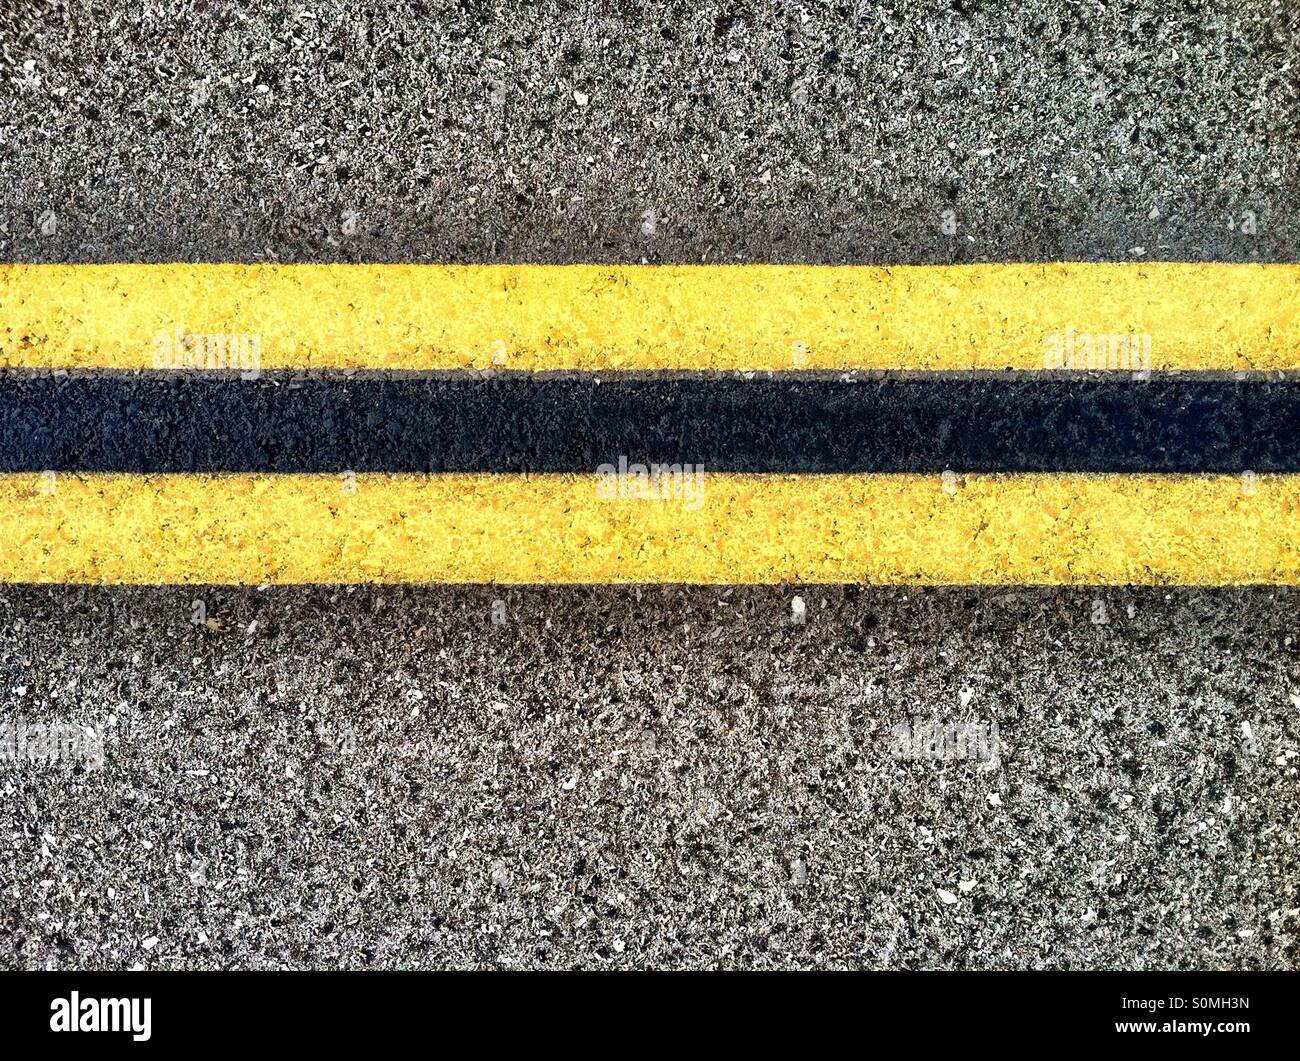 Double yellow lines on Highway - Stock Image